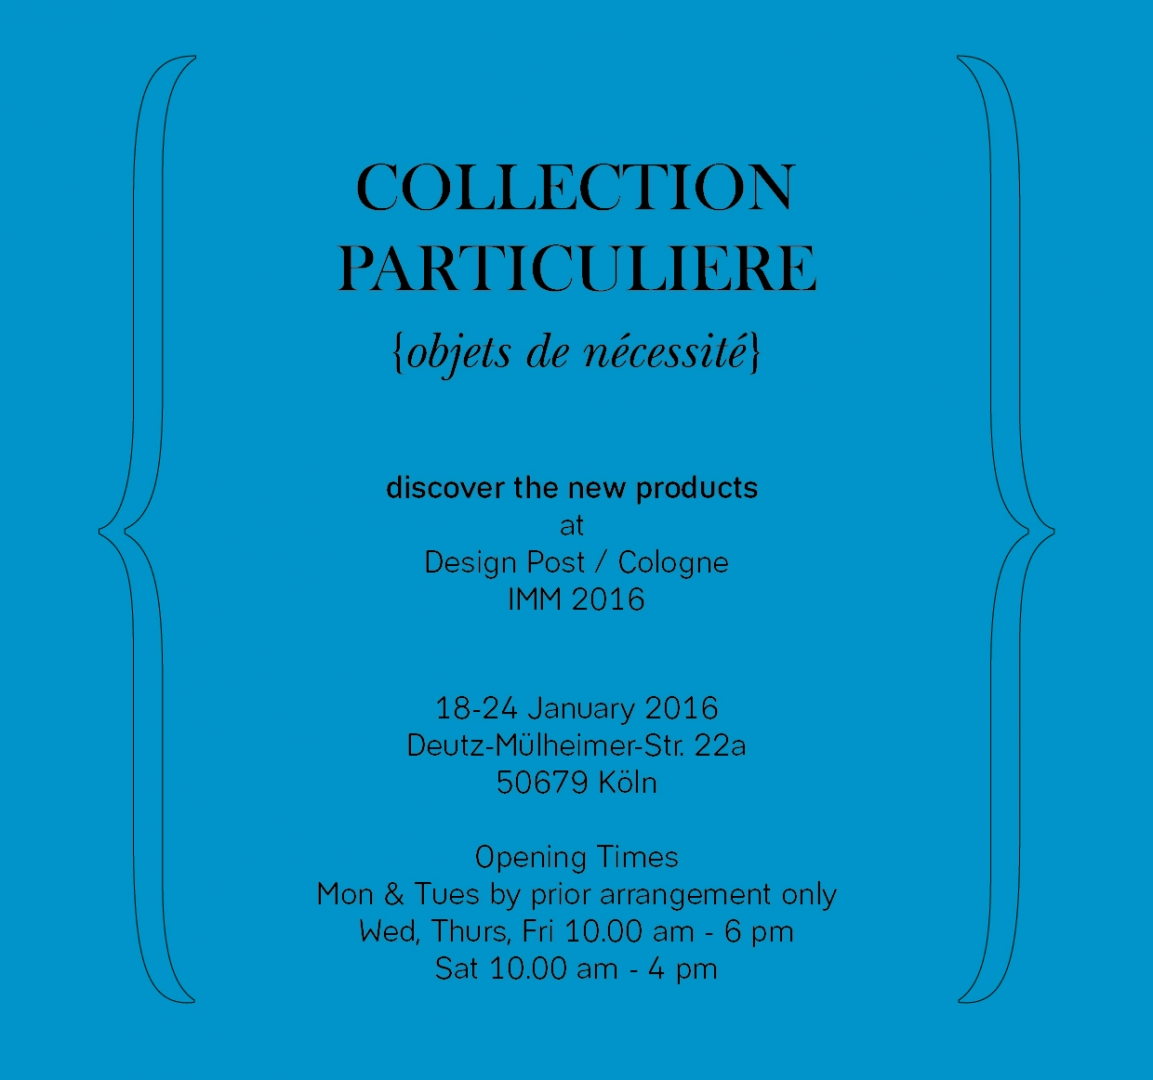 COLLECTION PARTICULIERE invetation copy-01.jpg